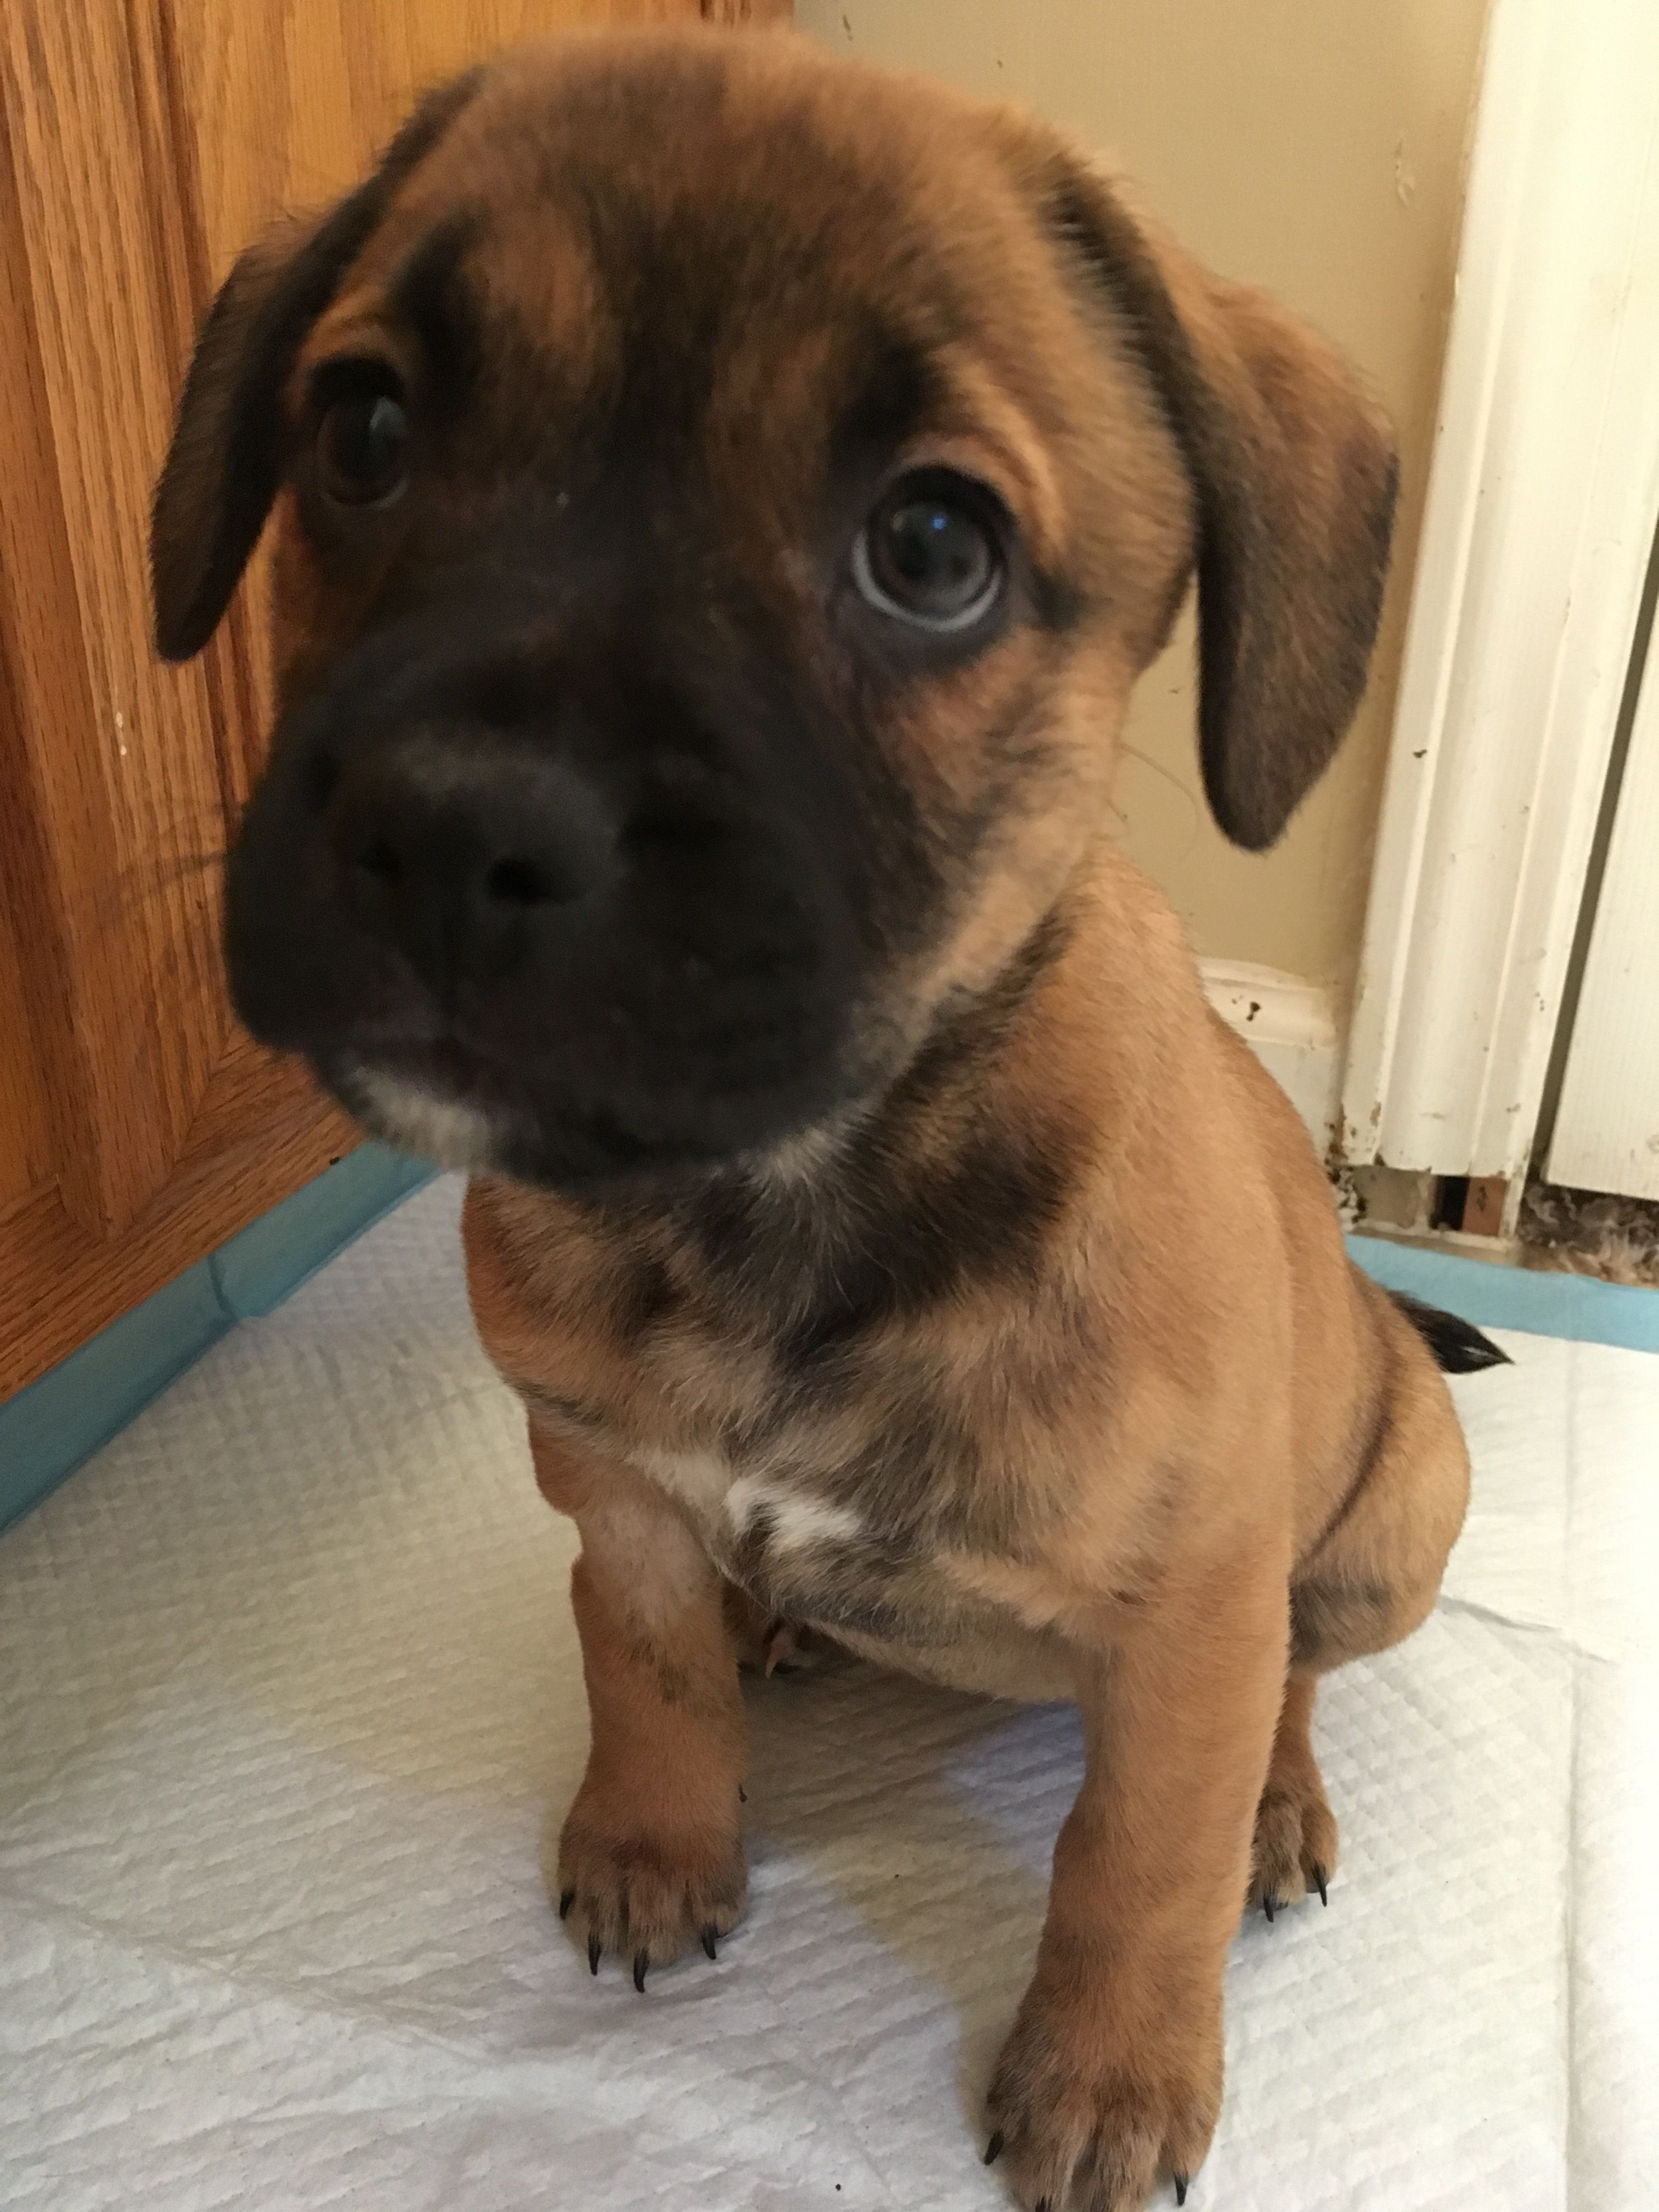 Adopt Tulip on Humane society, Puppies, Dogs